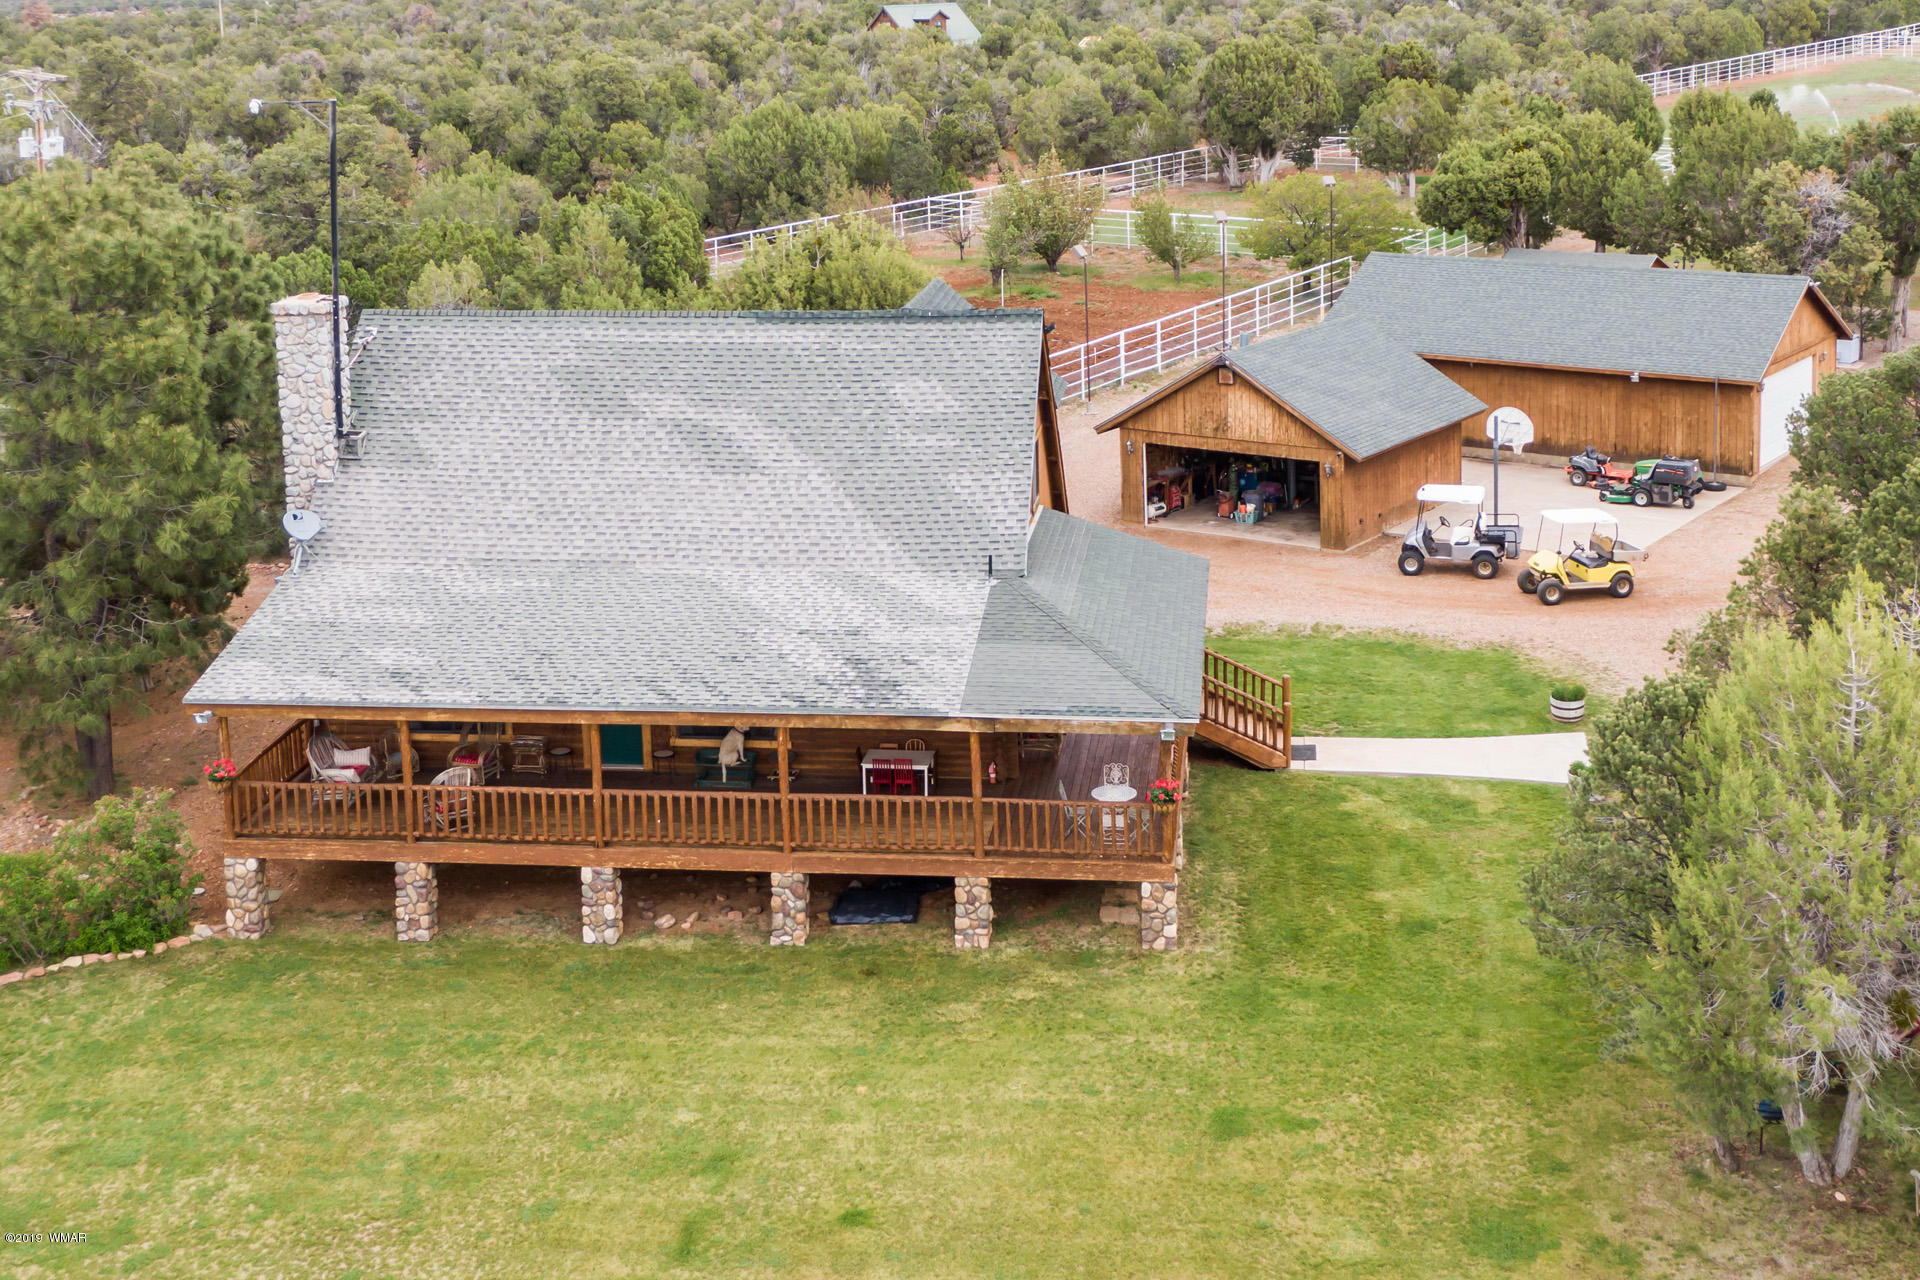 25 Acre Ranch in the middle of the Sitgreaves National Forest. Completely fenced, this secluded property has it all. Enjoy beautiful views of the lawn, green pastures, and natural foliage while relaxing on the covered deck of this 4 BD 3BA log home. The 3000+ sq ft barn has oversized stalls, a wash bay, tack room, office with sleeping quarters, automatic waterers. The drive through barn has a side door making loading and unloading easy and convenient. This unique property is a must see.